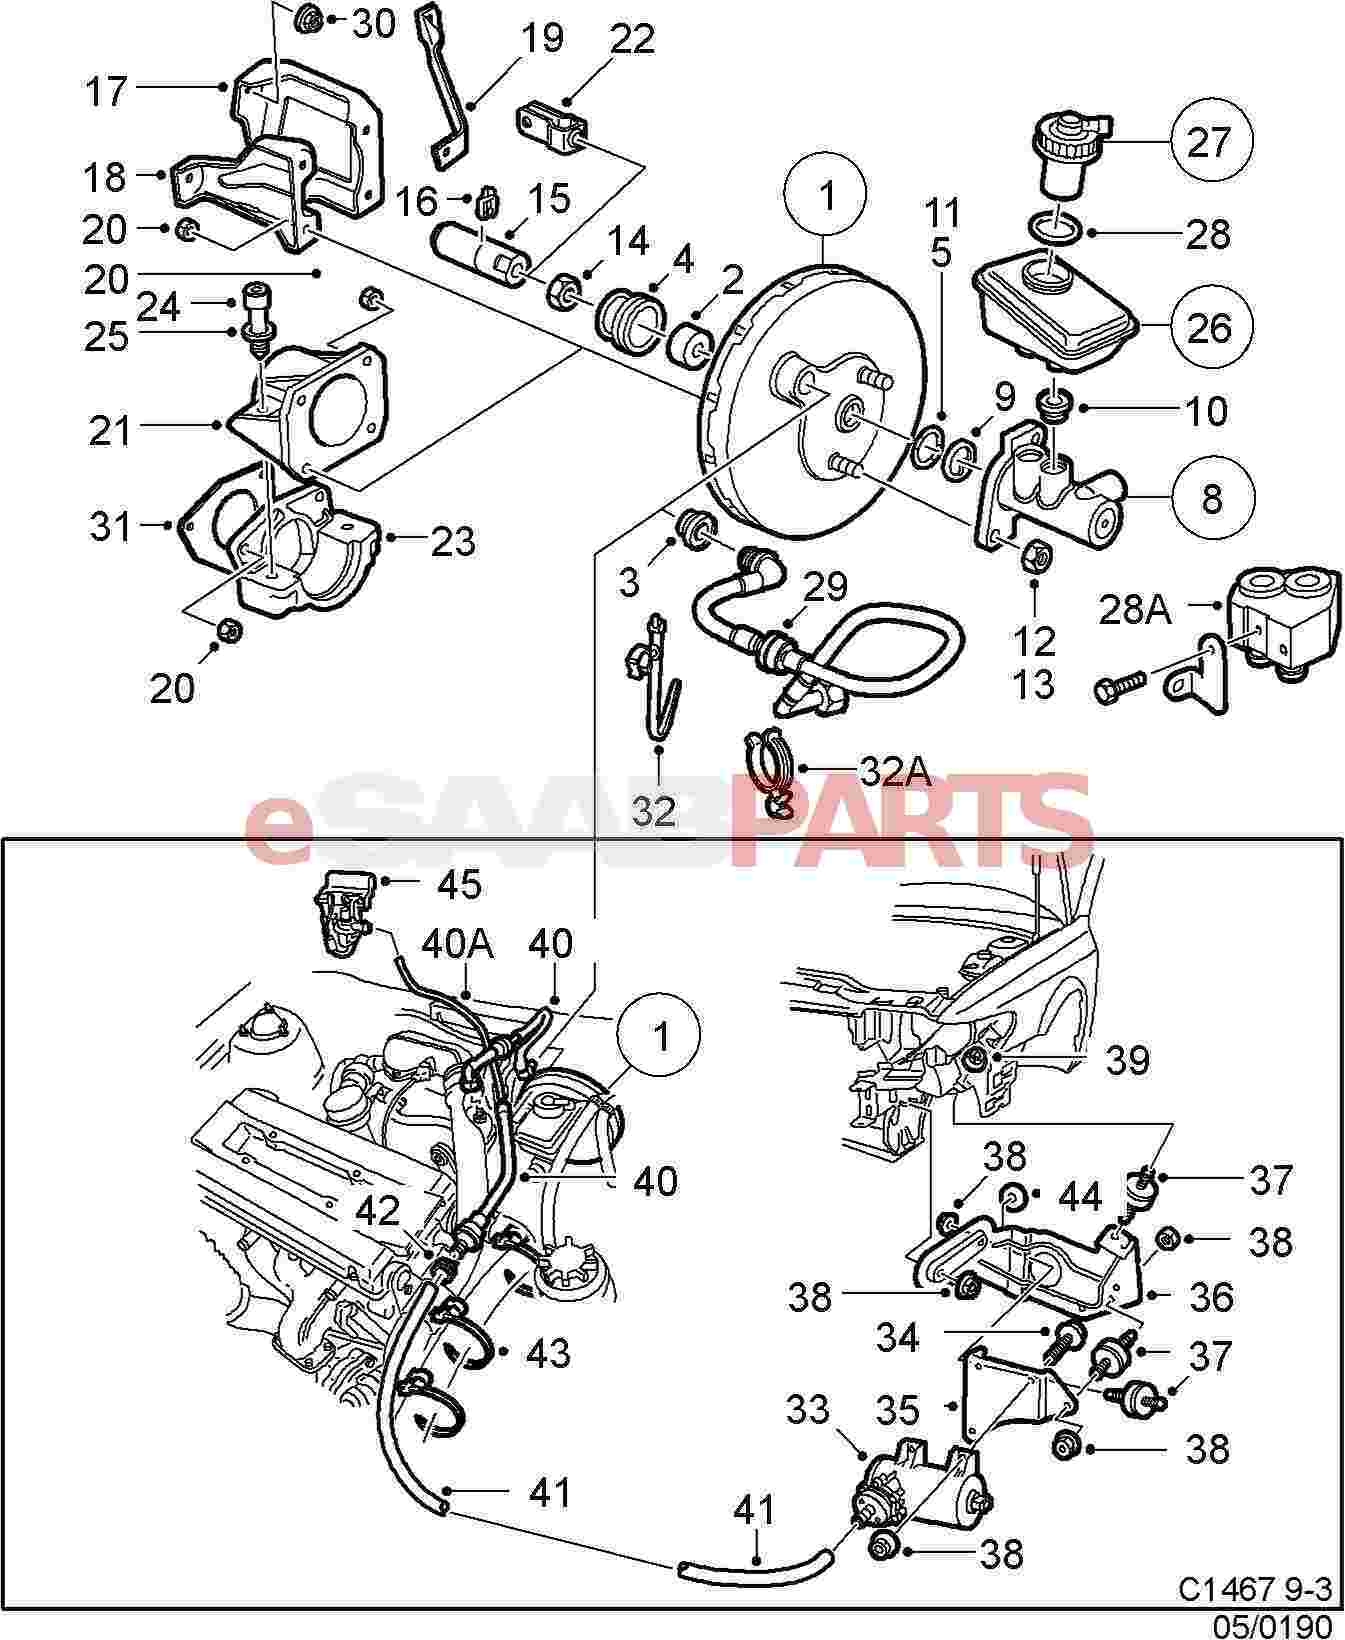 saab 9 3 parts diagram vacuum hoses  u2022 wiring diagram for free